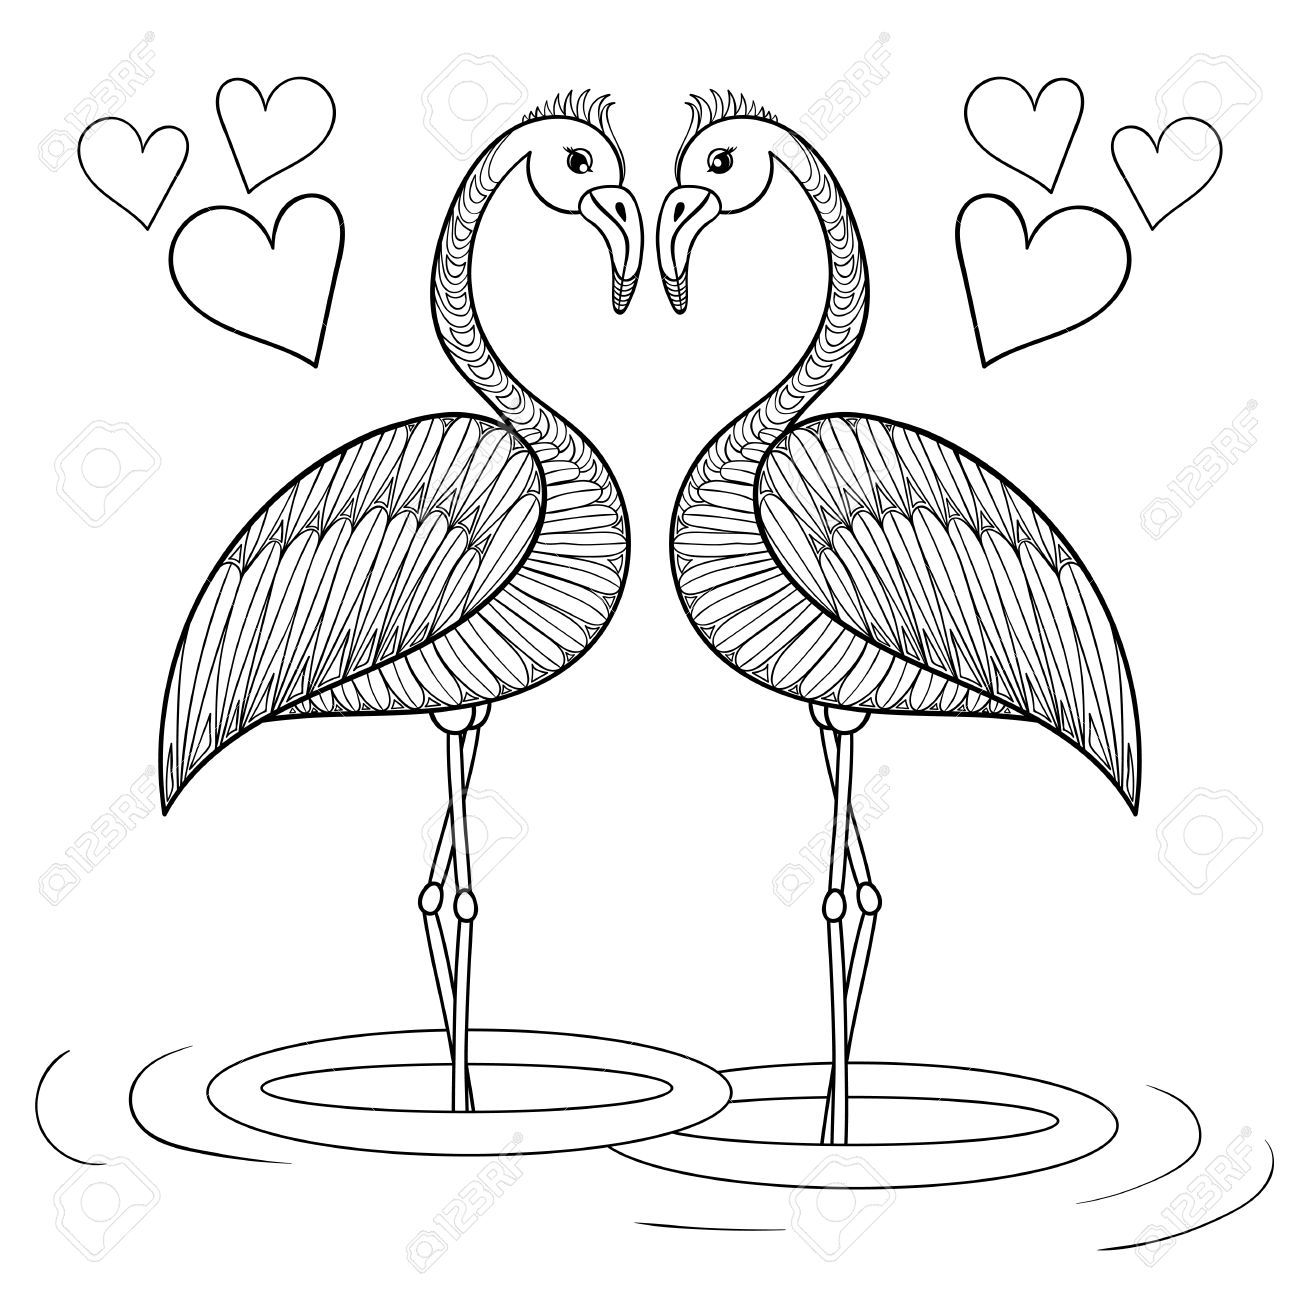 1300x1300 Coloring Page With Flamingo Birds In Love, Zentangle Hand Drawing